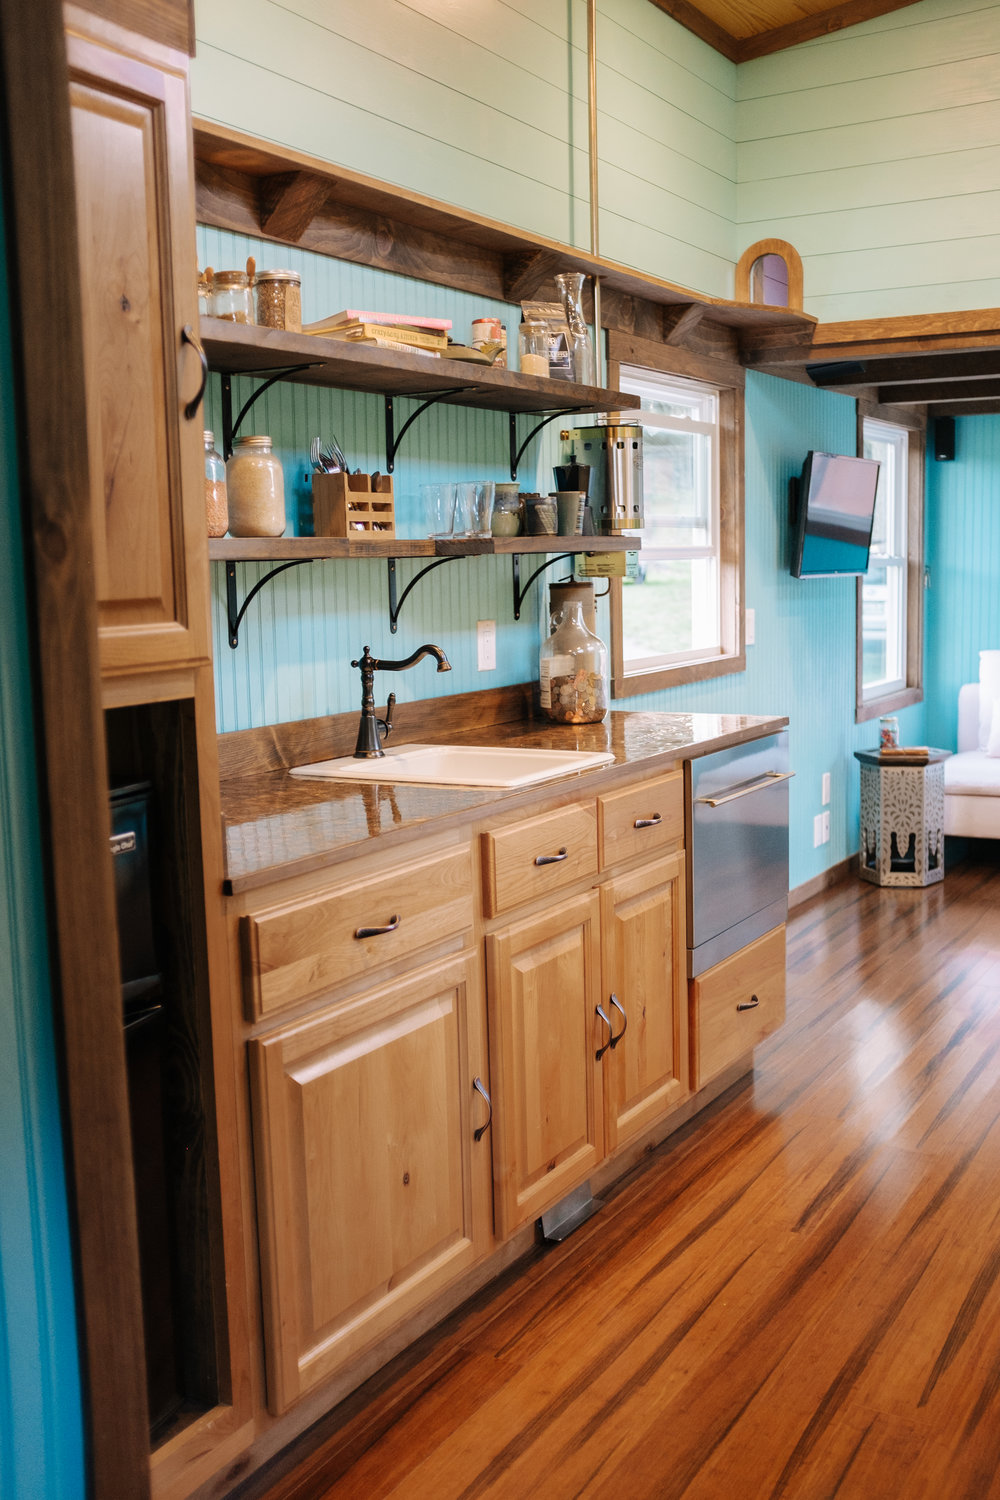 The Big Whimsy by Wind River Tiny Homes - compact dishwasher, open shelving, custom penny counter top, bamboo flooring, foot control kitchen faucet